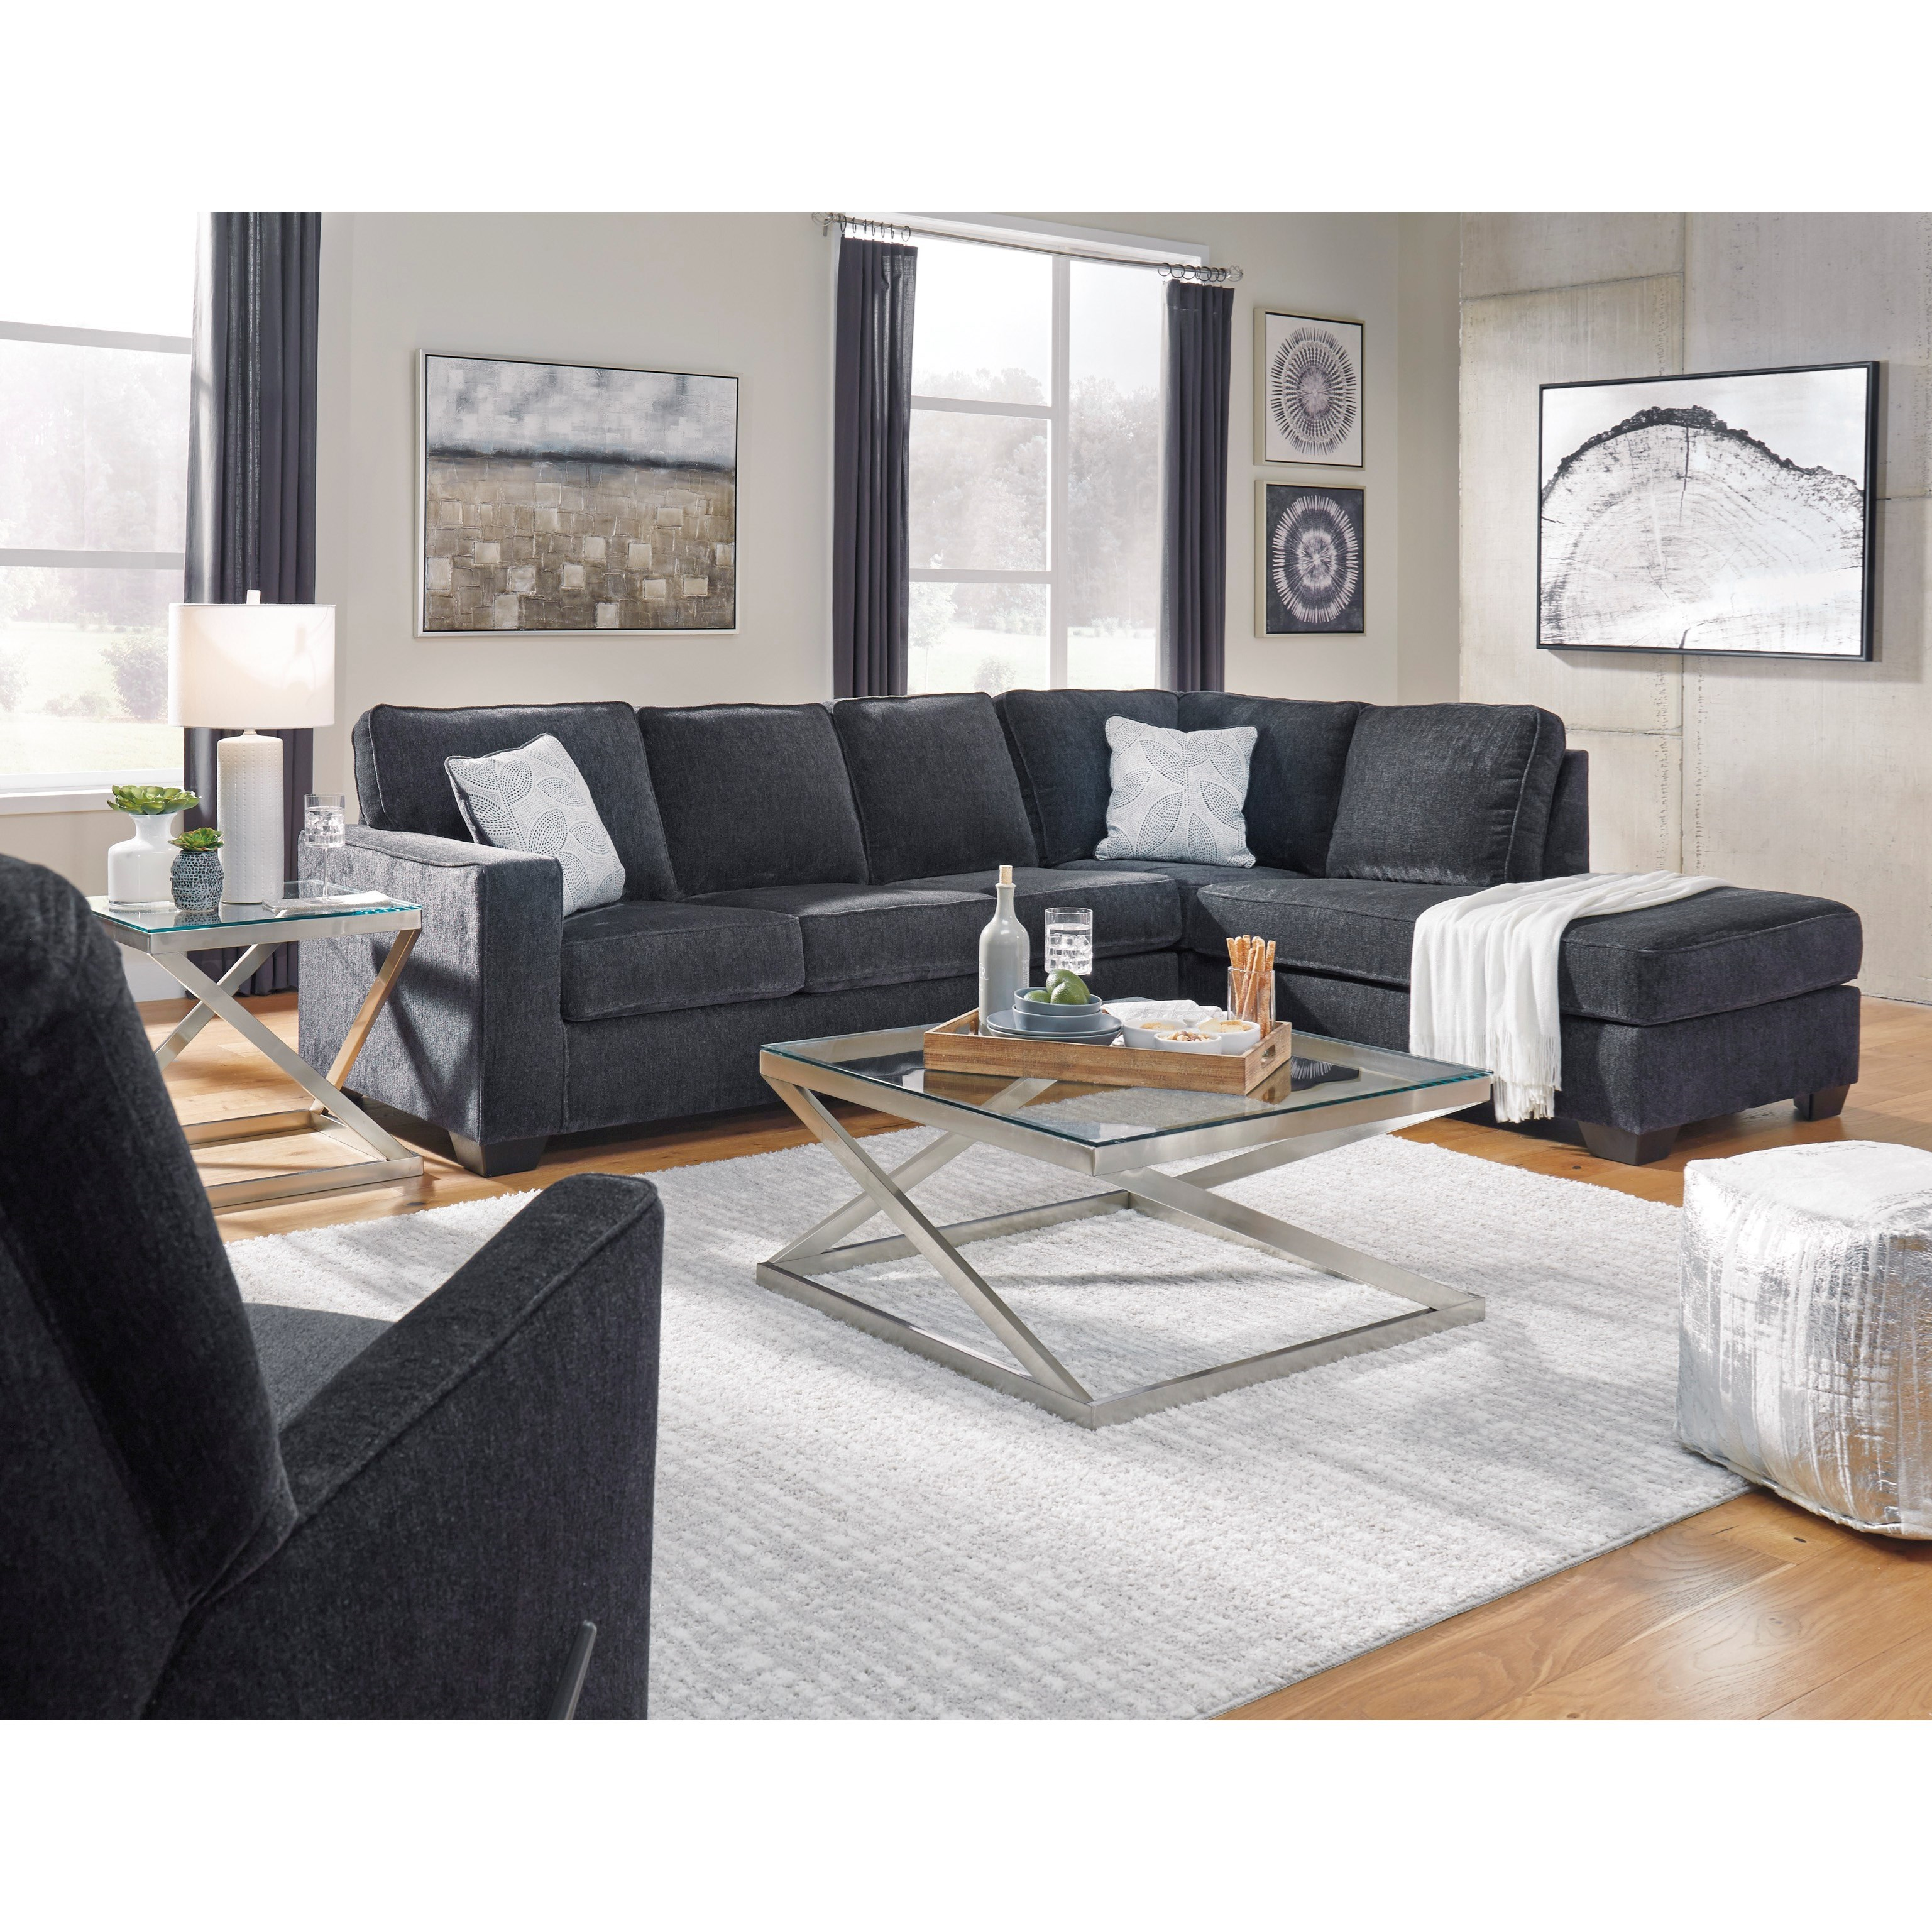 Altari Living Room Group by Signature Design by Ashley at Catalog Outlet